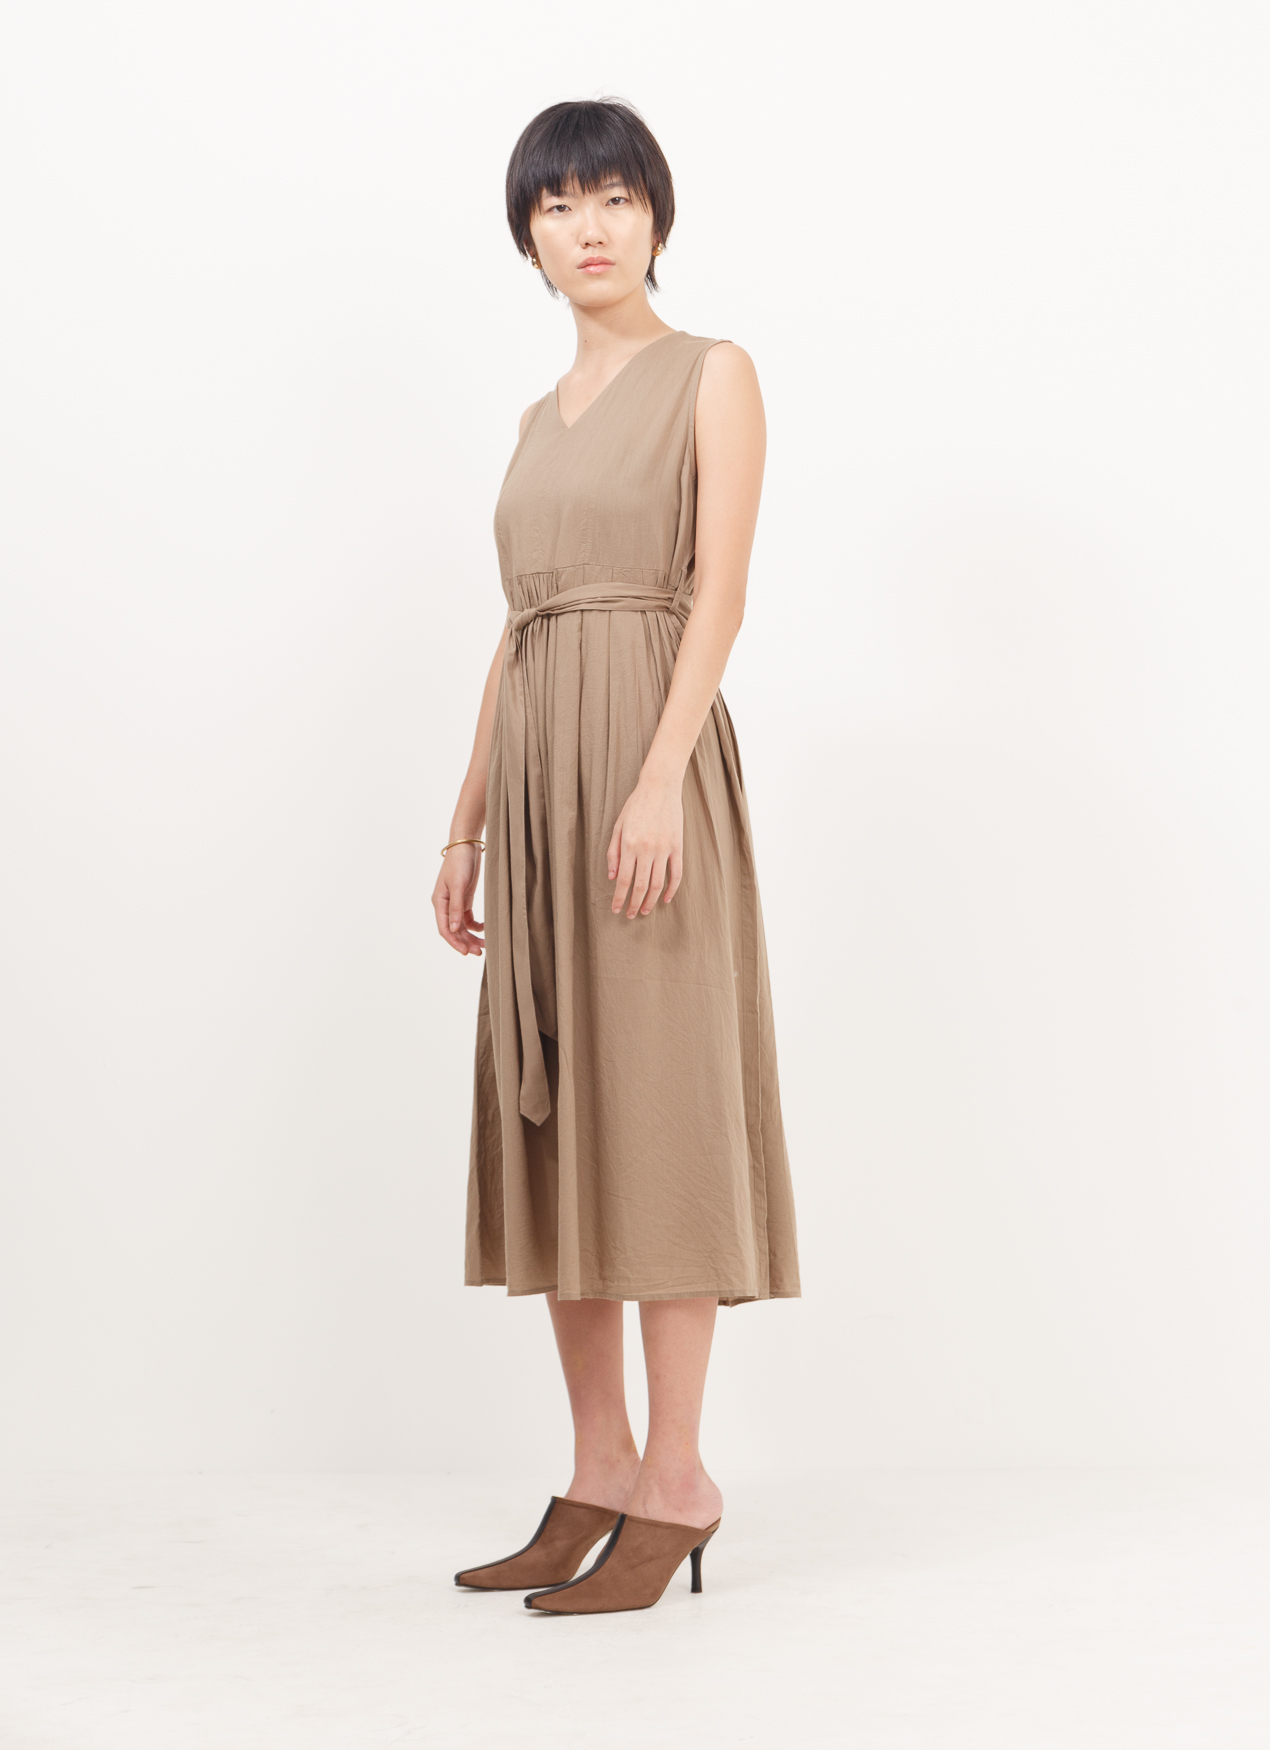 American Holic Felice Dress - Mocha